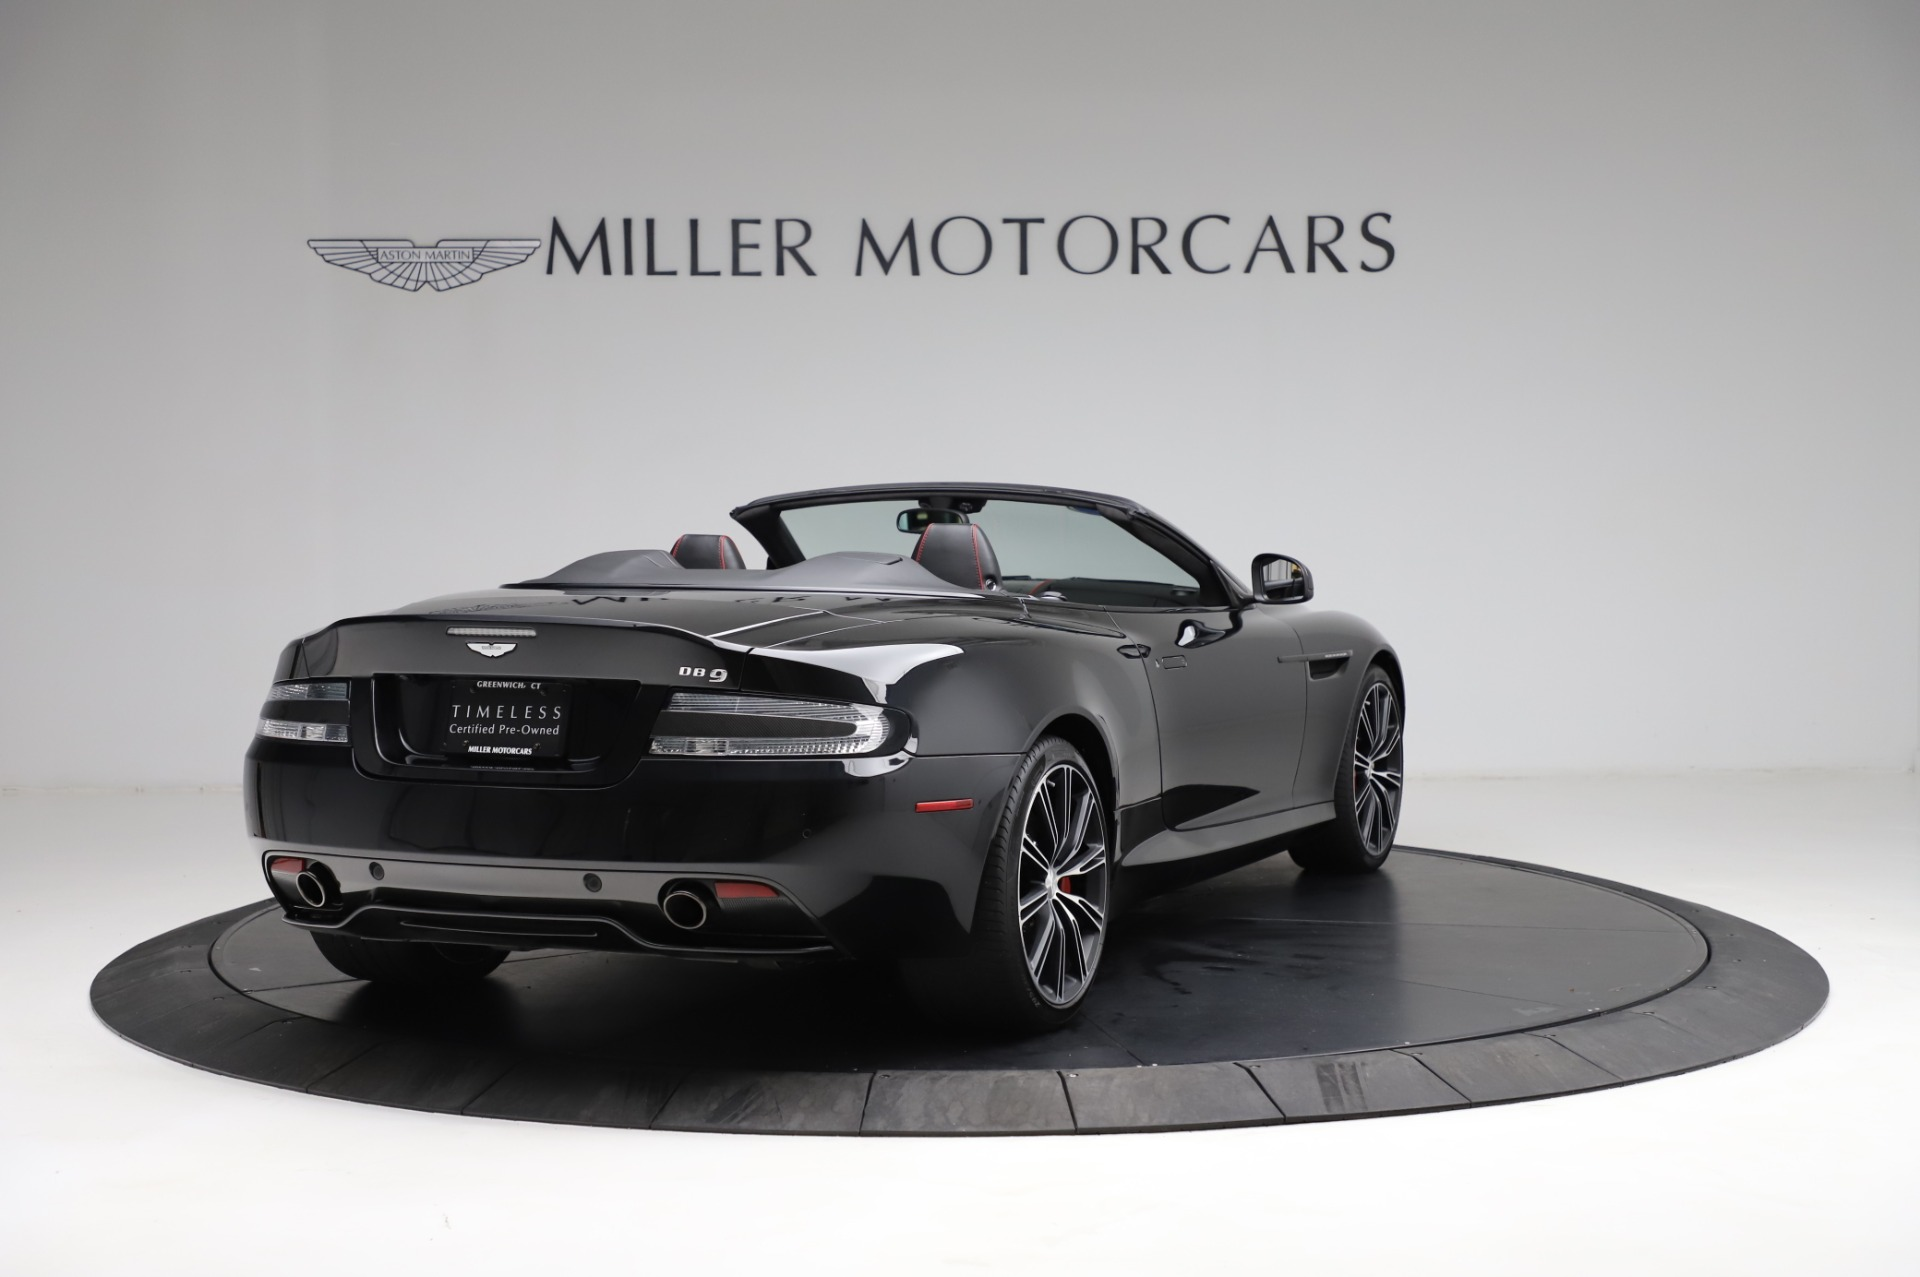 Used 2015 Aston Martin DB9 Carbon Edition Volante For Sale In Westport, CT 1919_p6